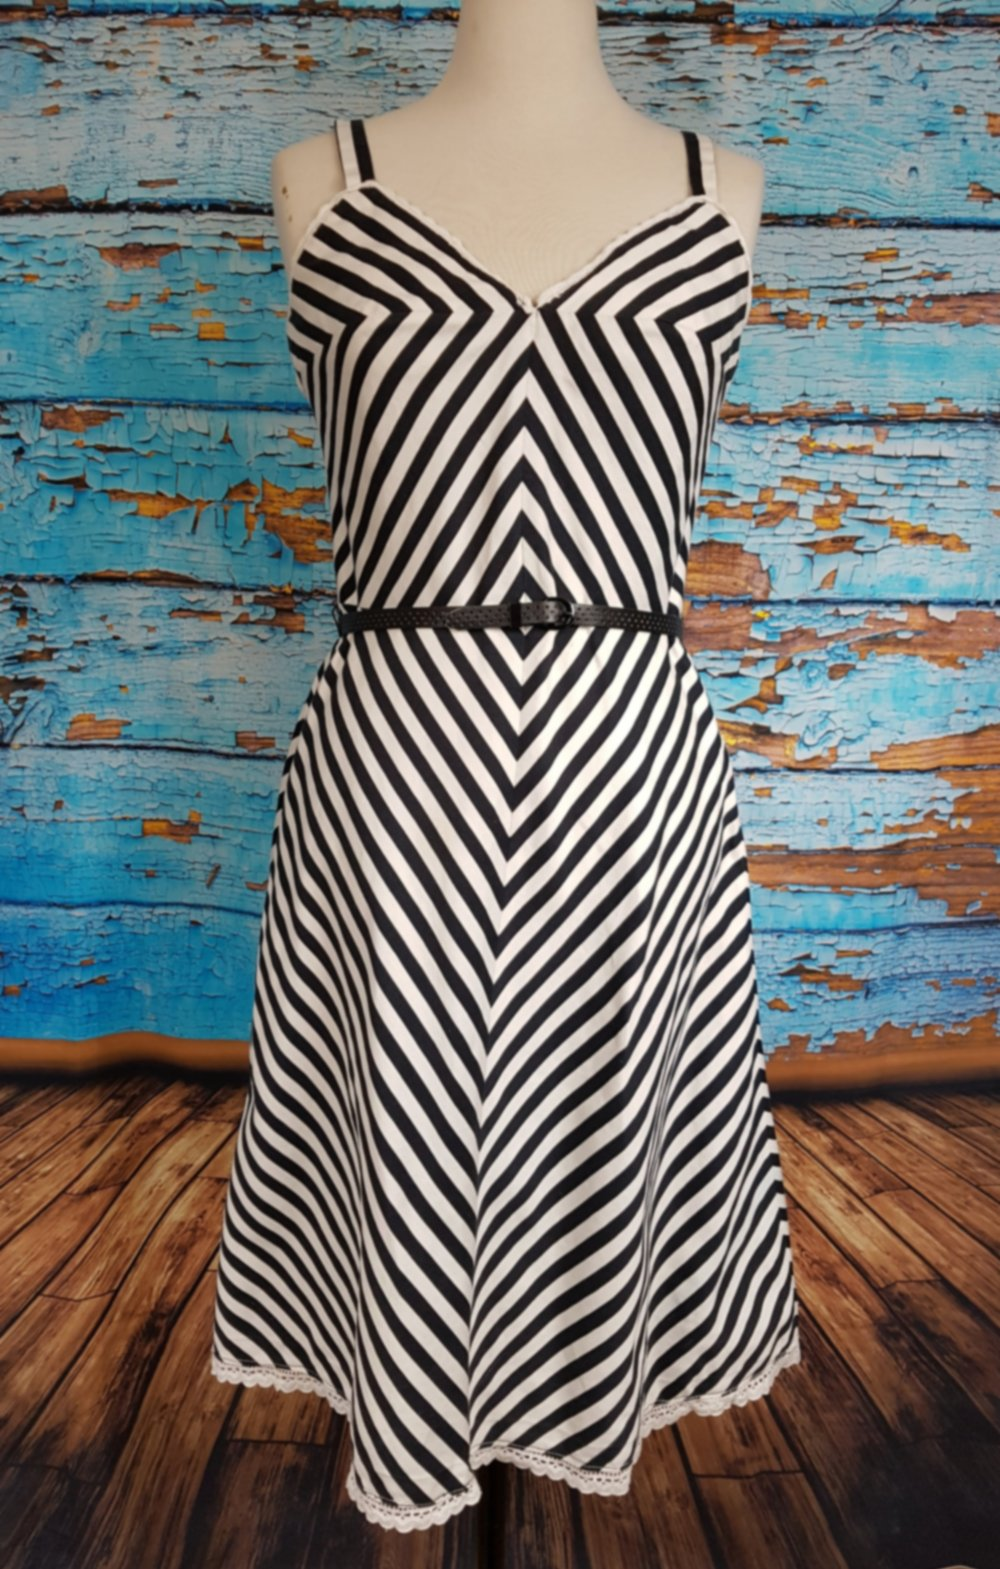 70s / 80s black and white striped dress,